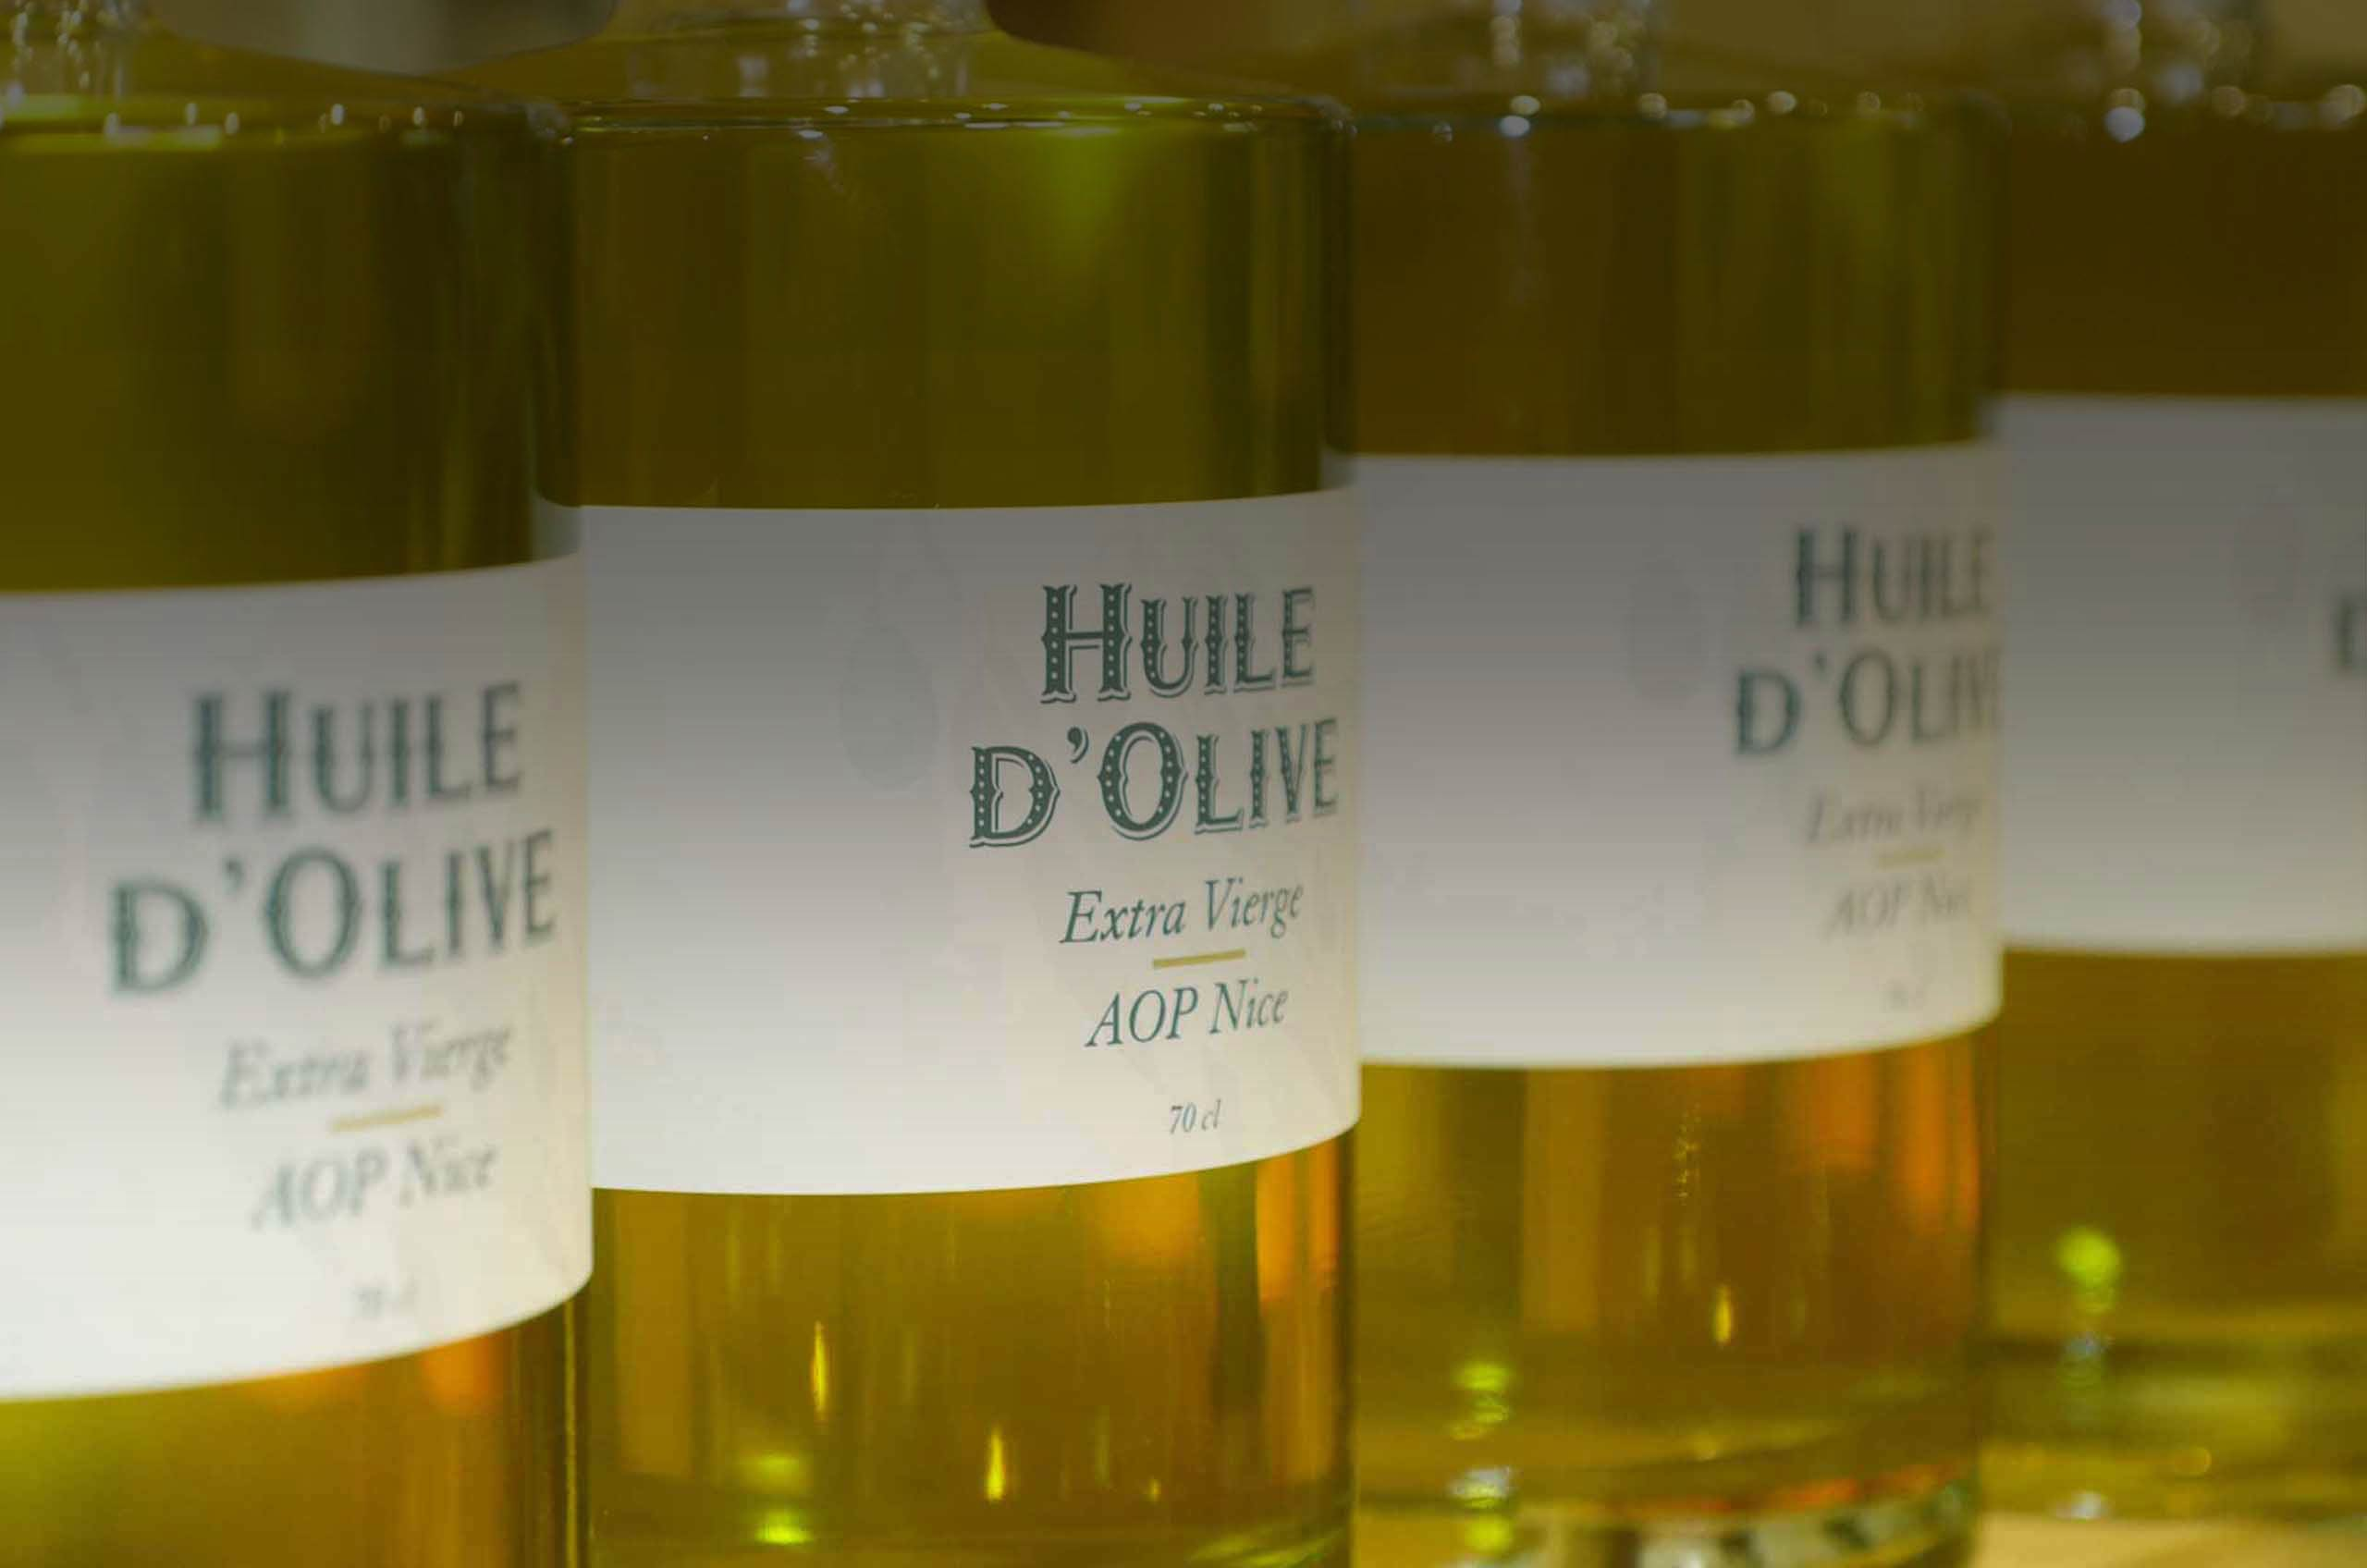 Huile d'olive extra vierge aop nice